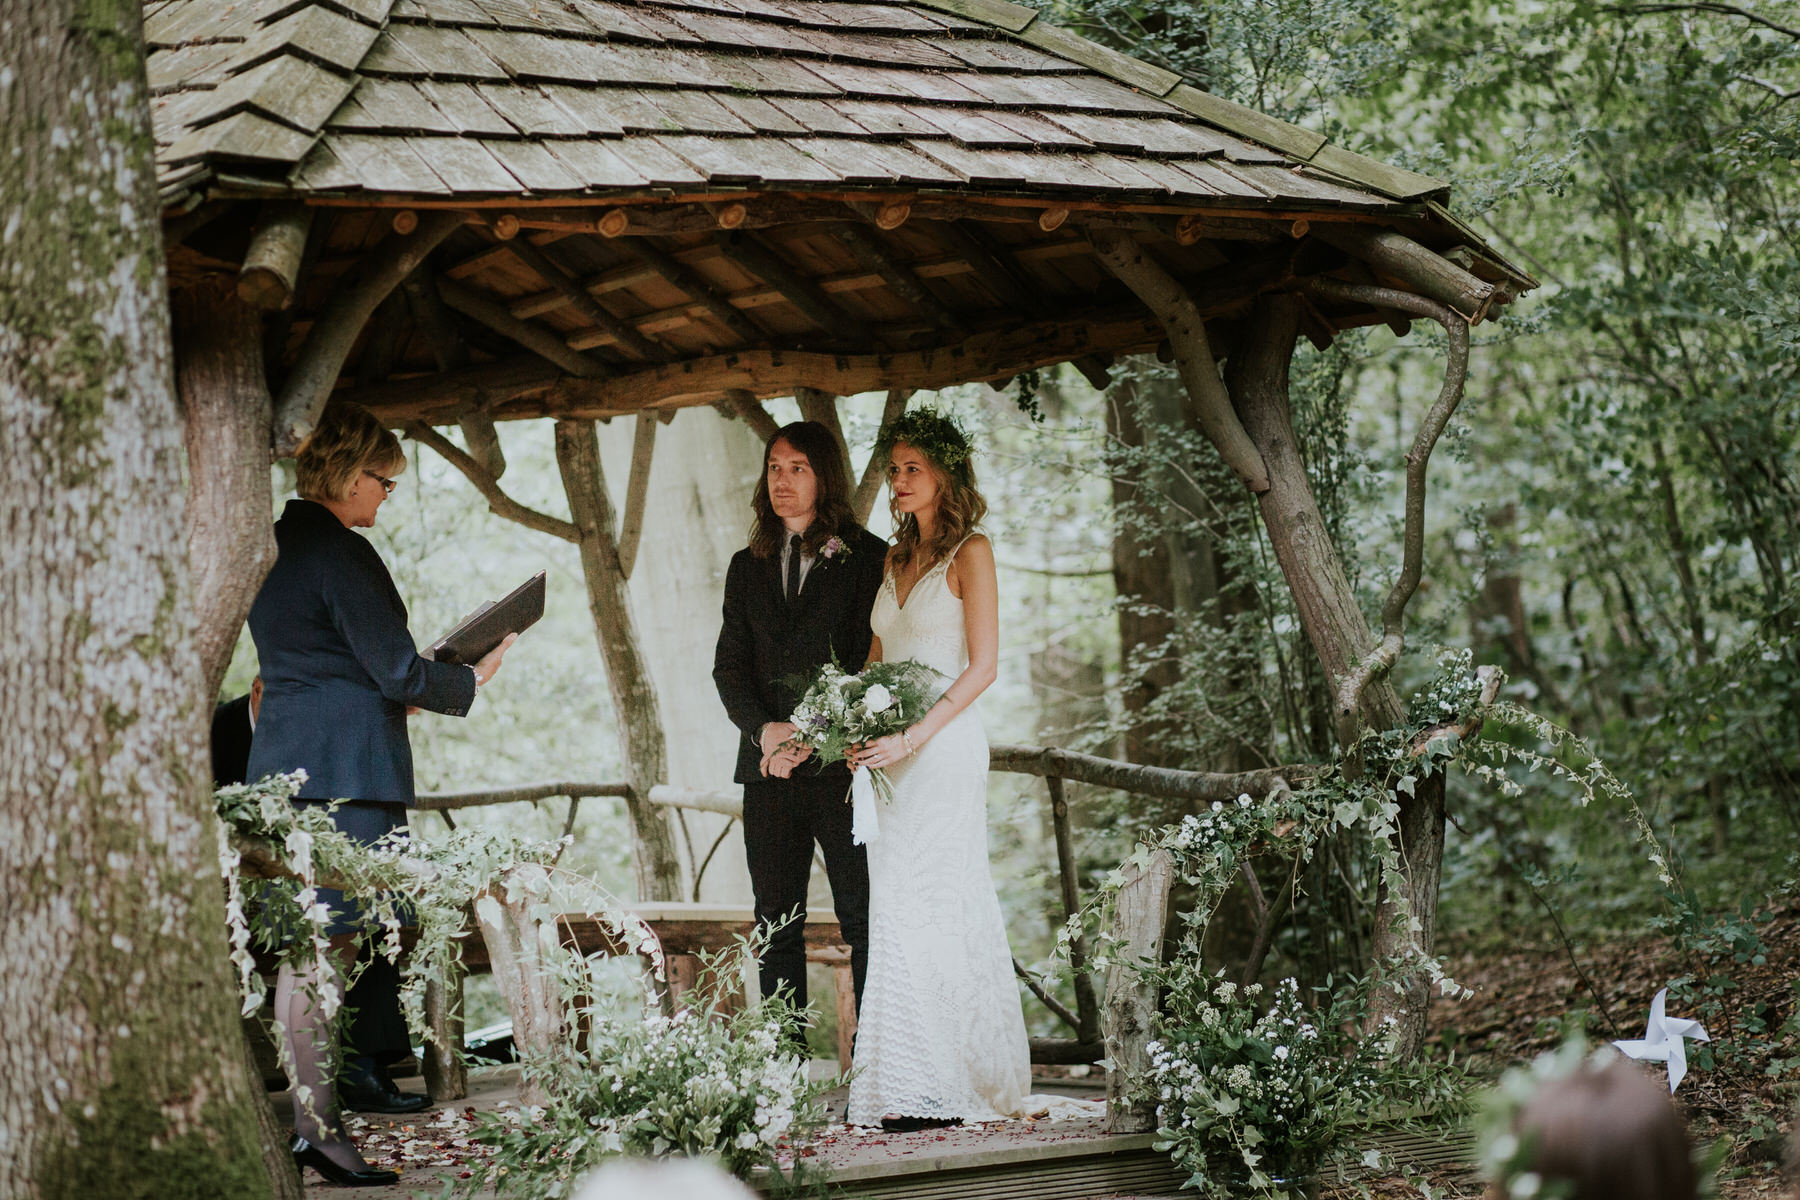 29 groom bride celebrant woodland outdoor wedding ceremony under wooden bower.jpg